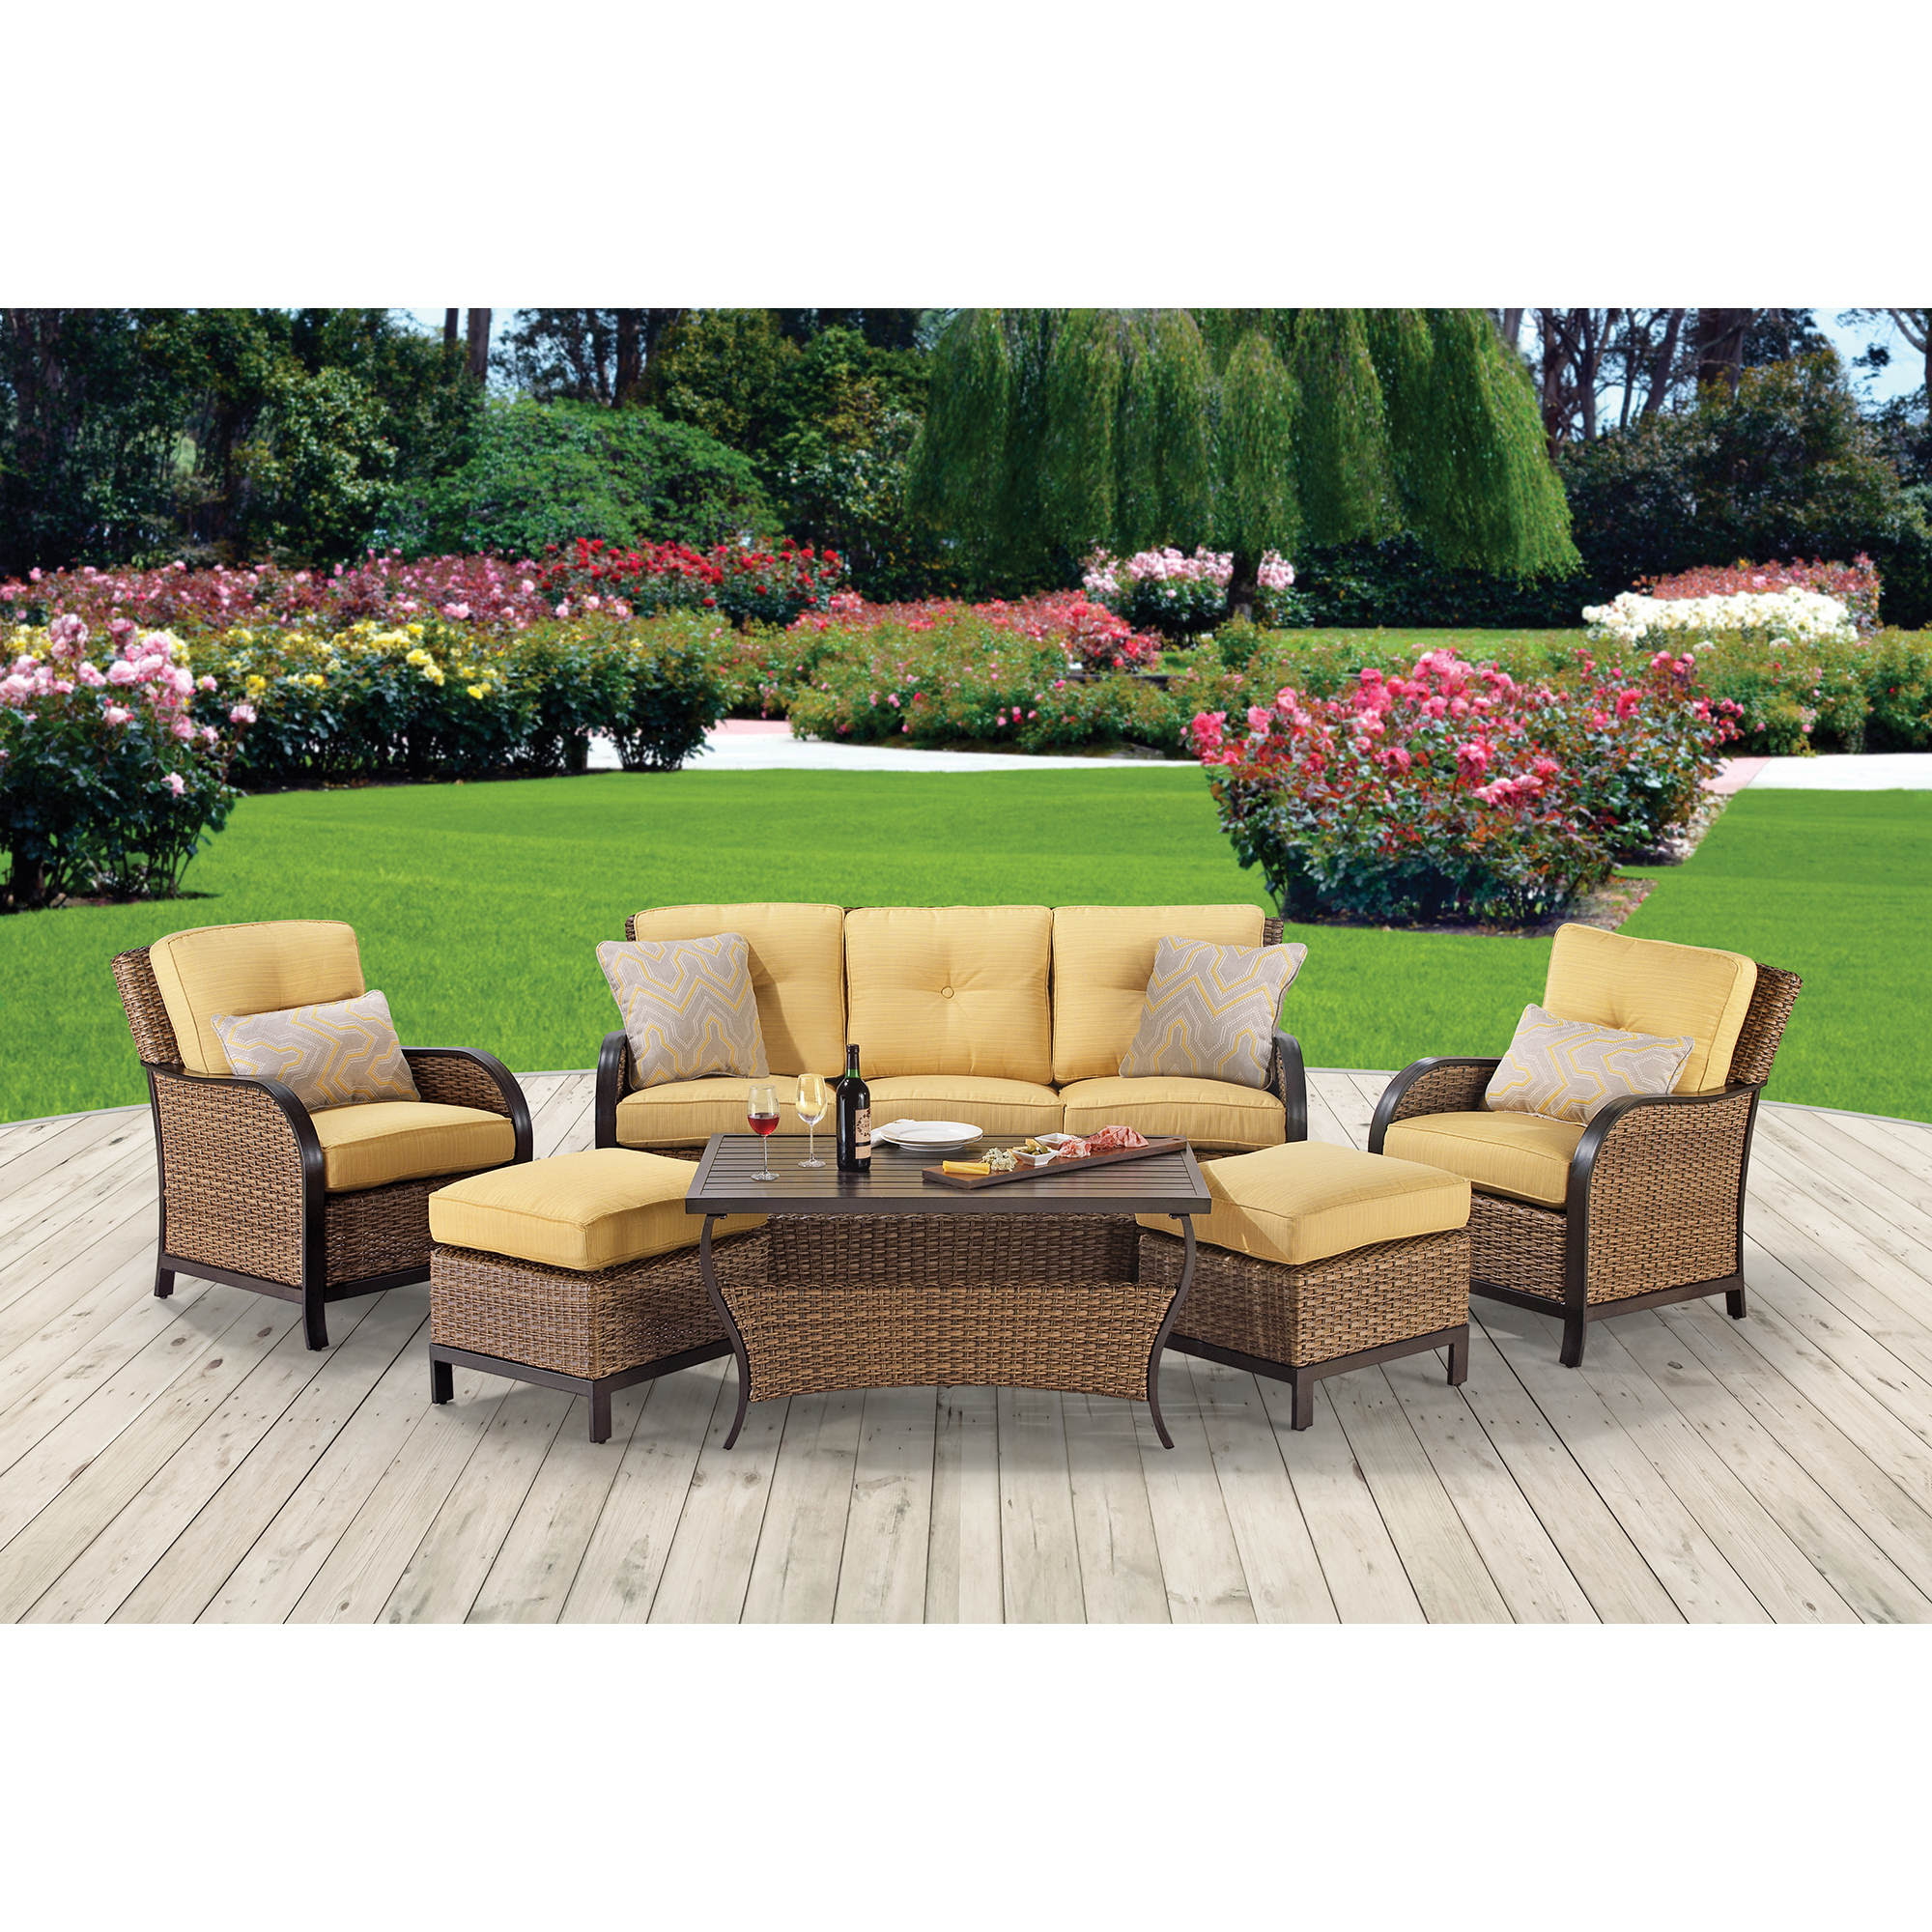 Direct Gardening Supplies Bj Outdoor Furniture